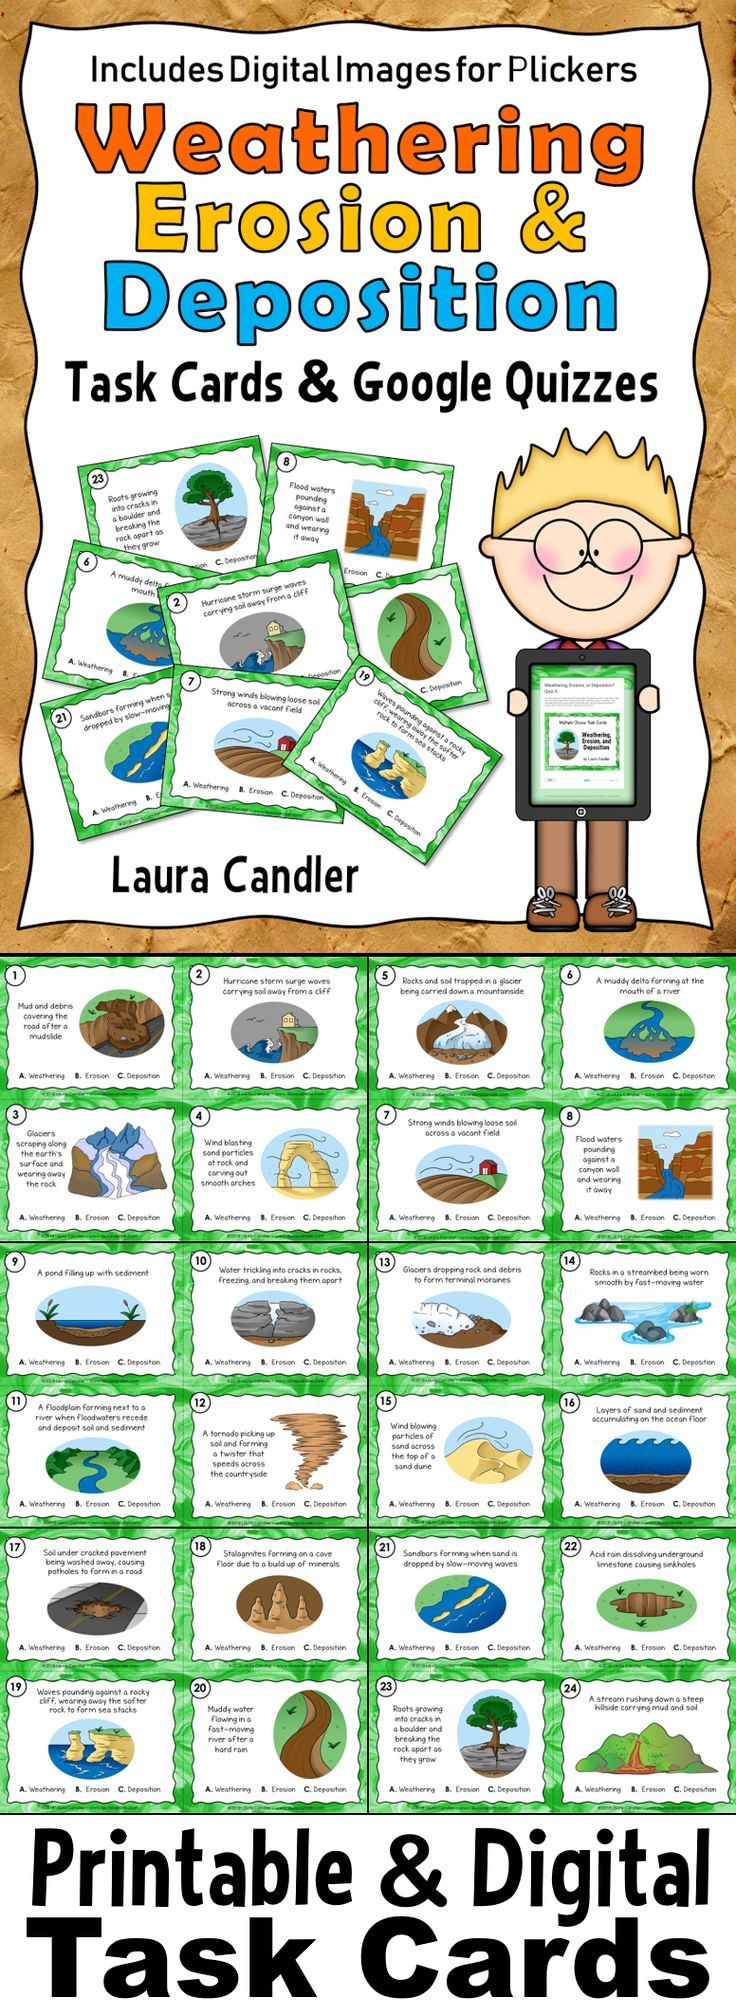 Weathering and Erosion Task Cards and Google Quizzes - 24 printable task cards and task card images that show how weathering, erosion, and deposition change the earth's landforms. Perfect for active engagement science lessons, cooperative learning games, independent practice, whole-class review, and formative assessment. Also includes 2 self-grading Google Classroom quizzes!